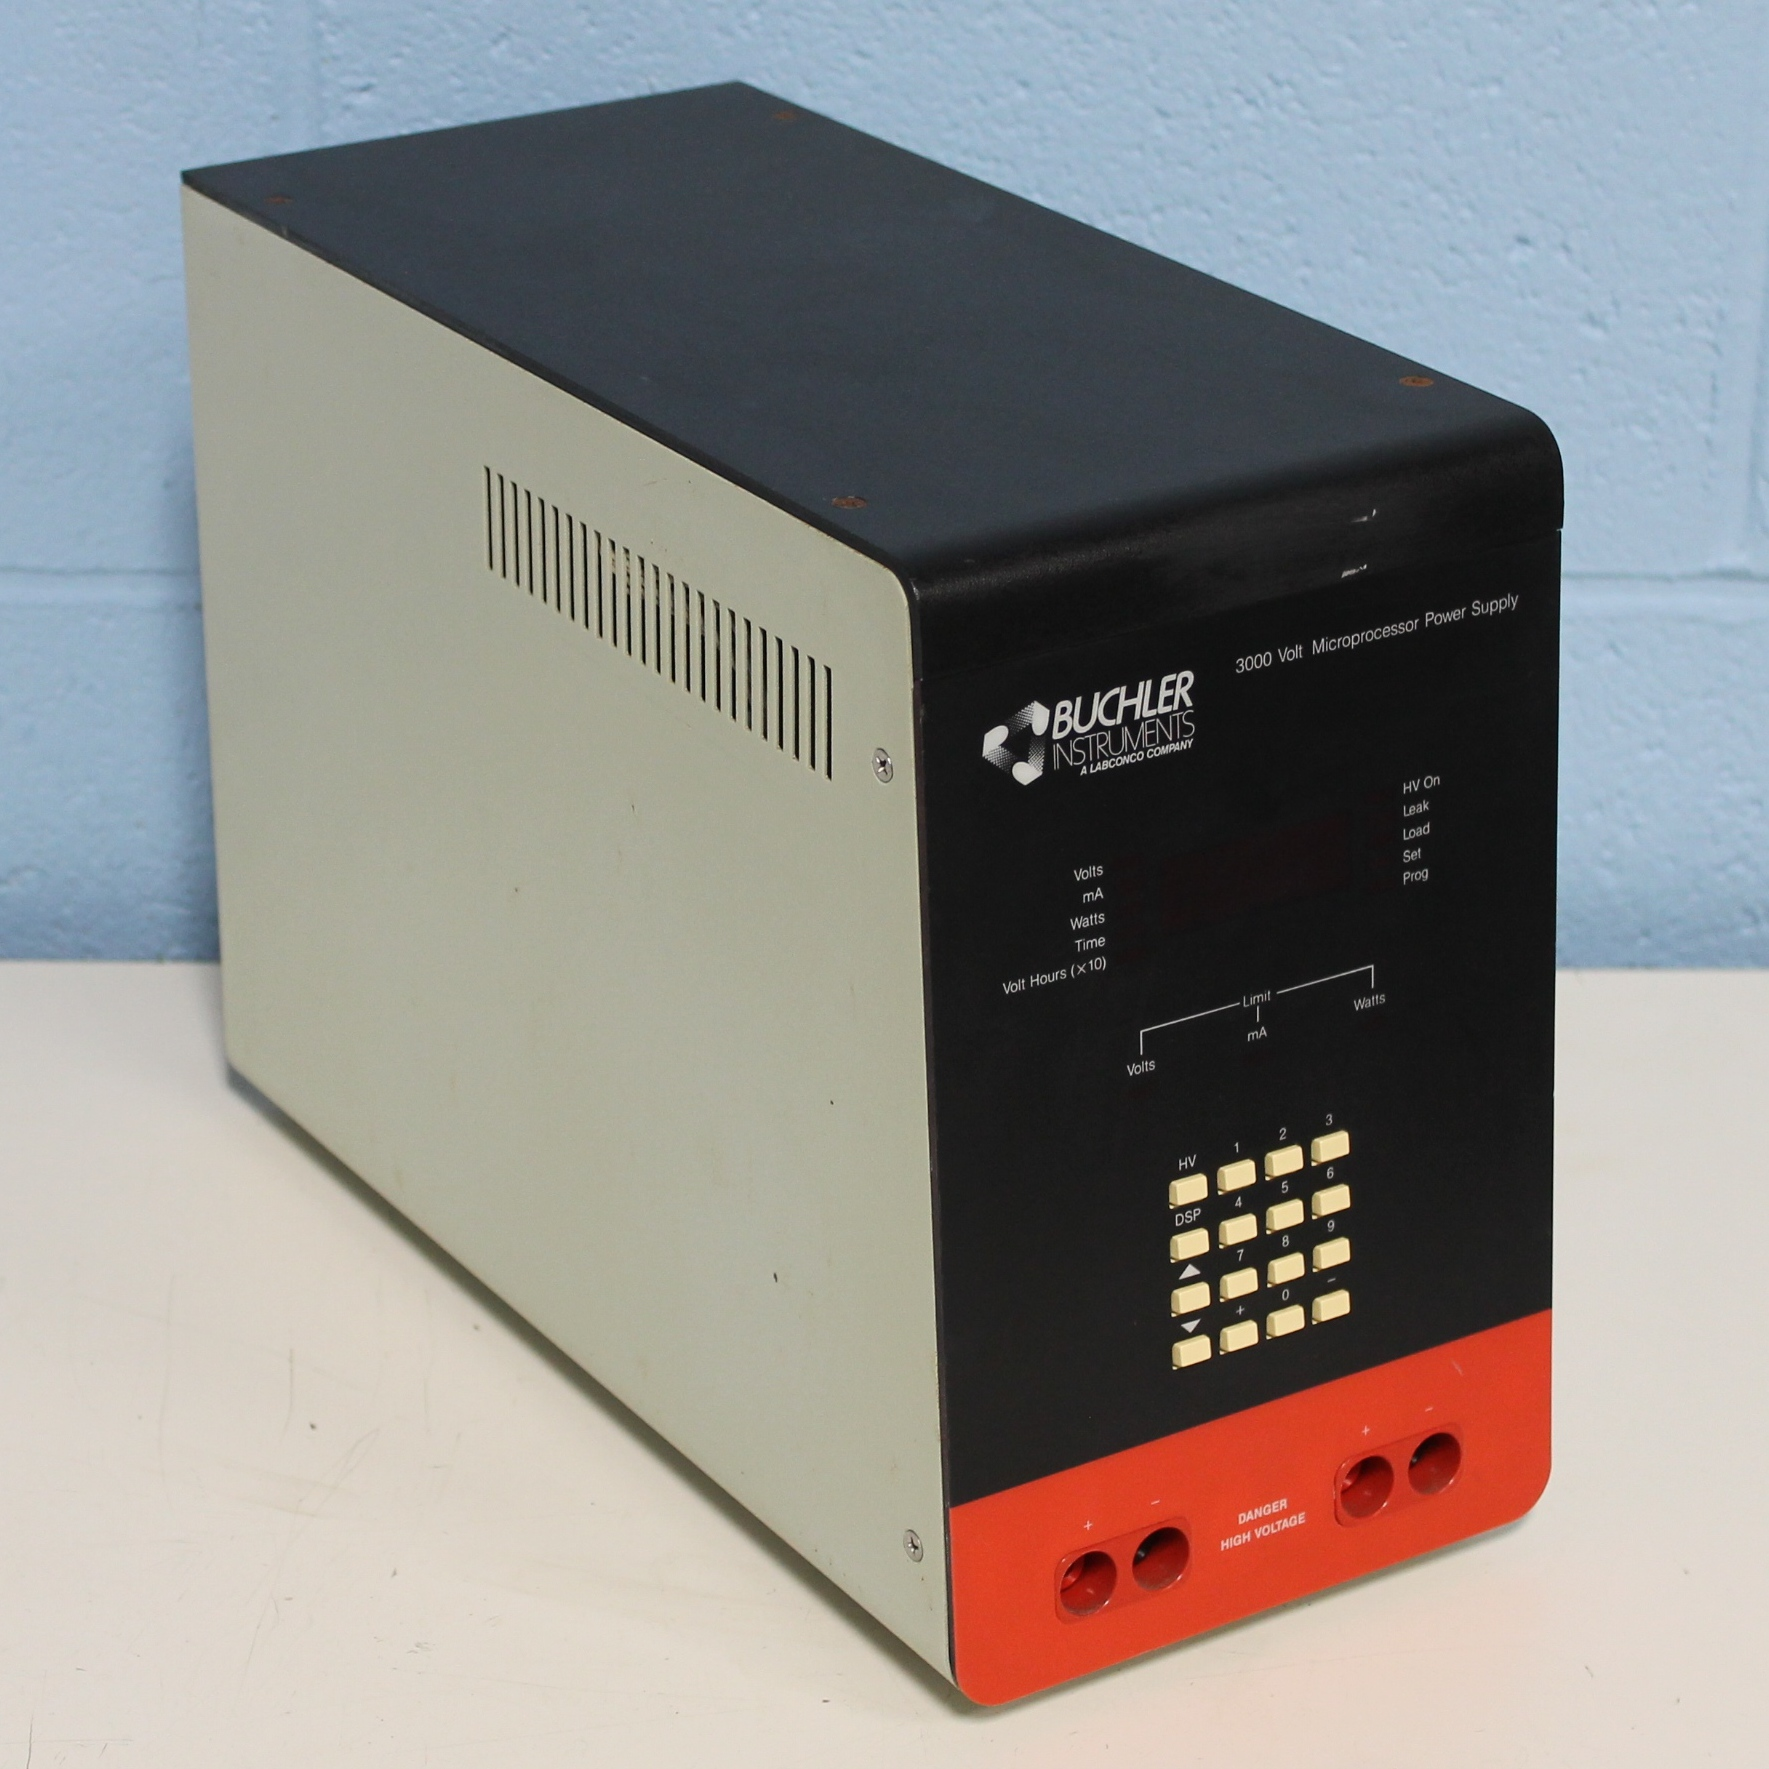 Buchler Instruments 3000 Volt Microprocessor Power Supply Image